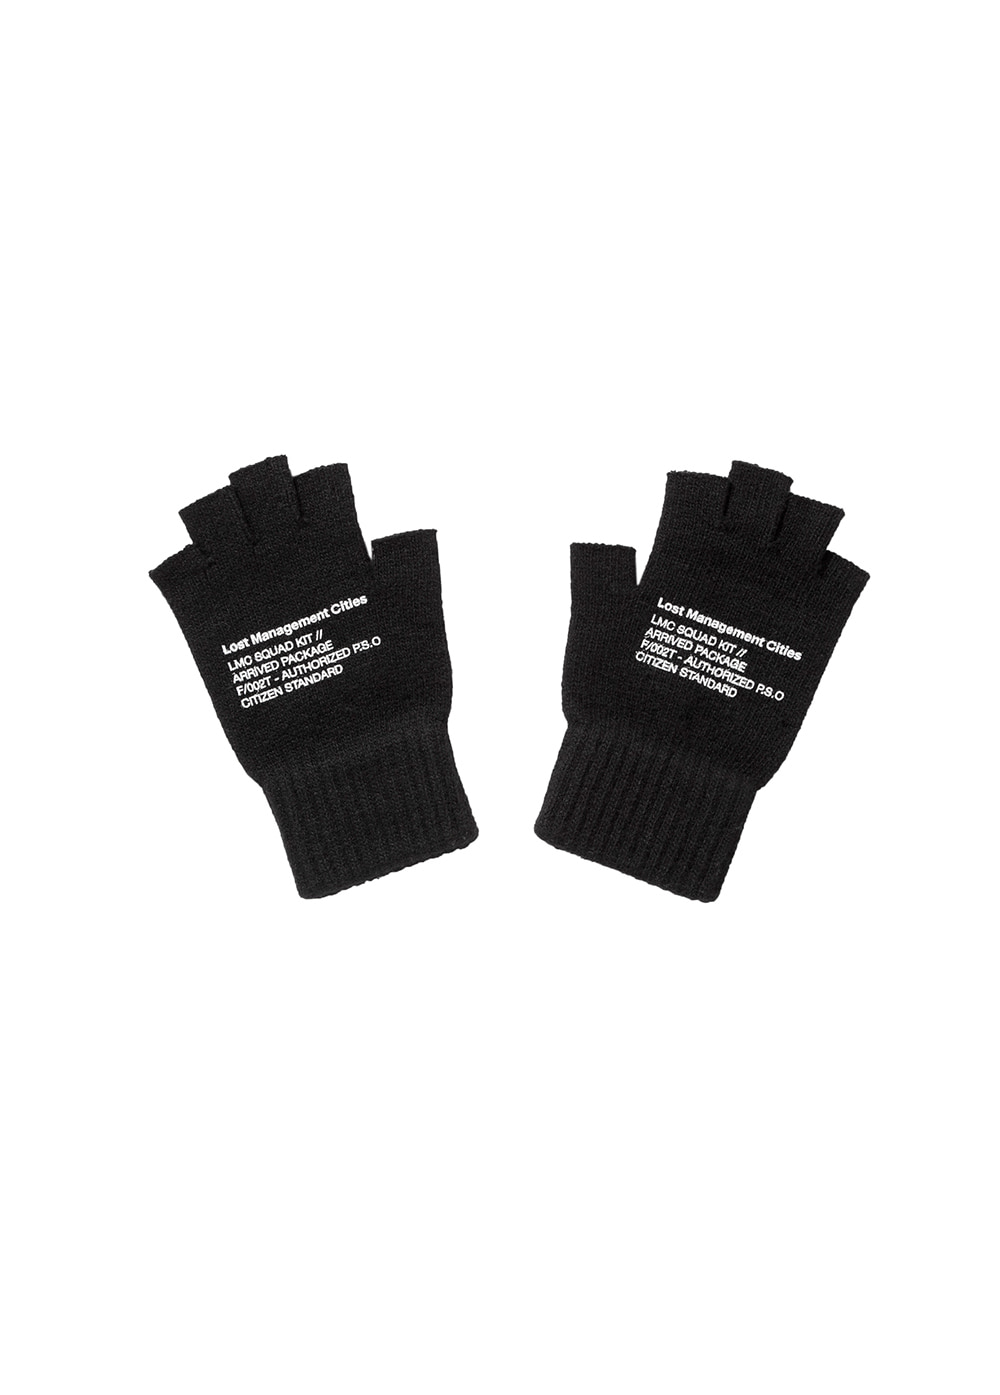 LMC MIL FINGERLESS GLOVE black